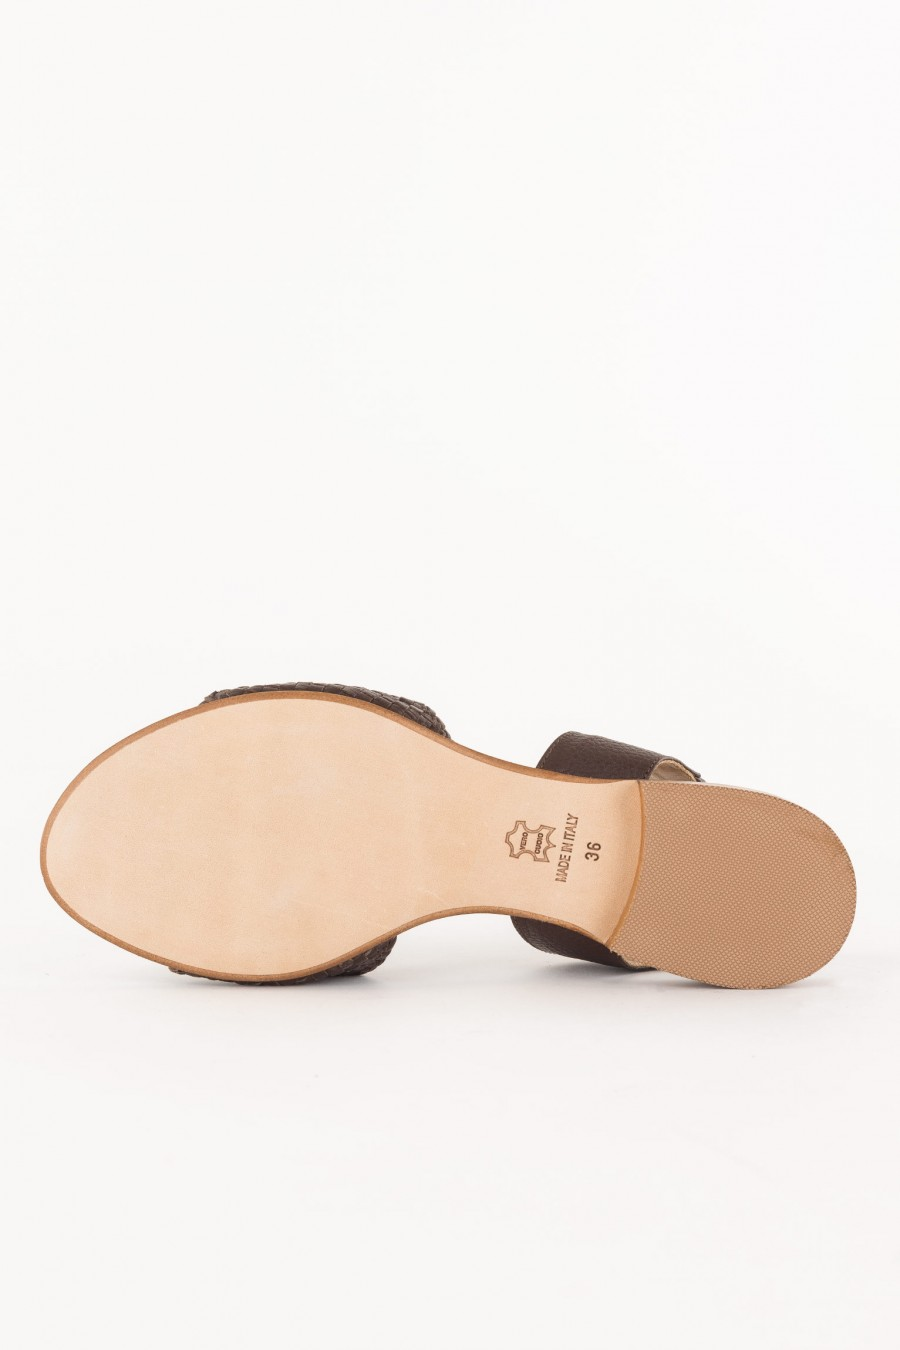 Lazzari made in Italy sandal